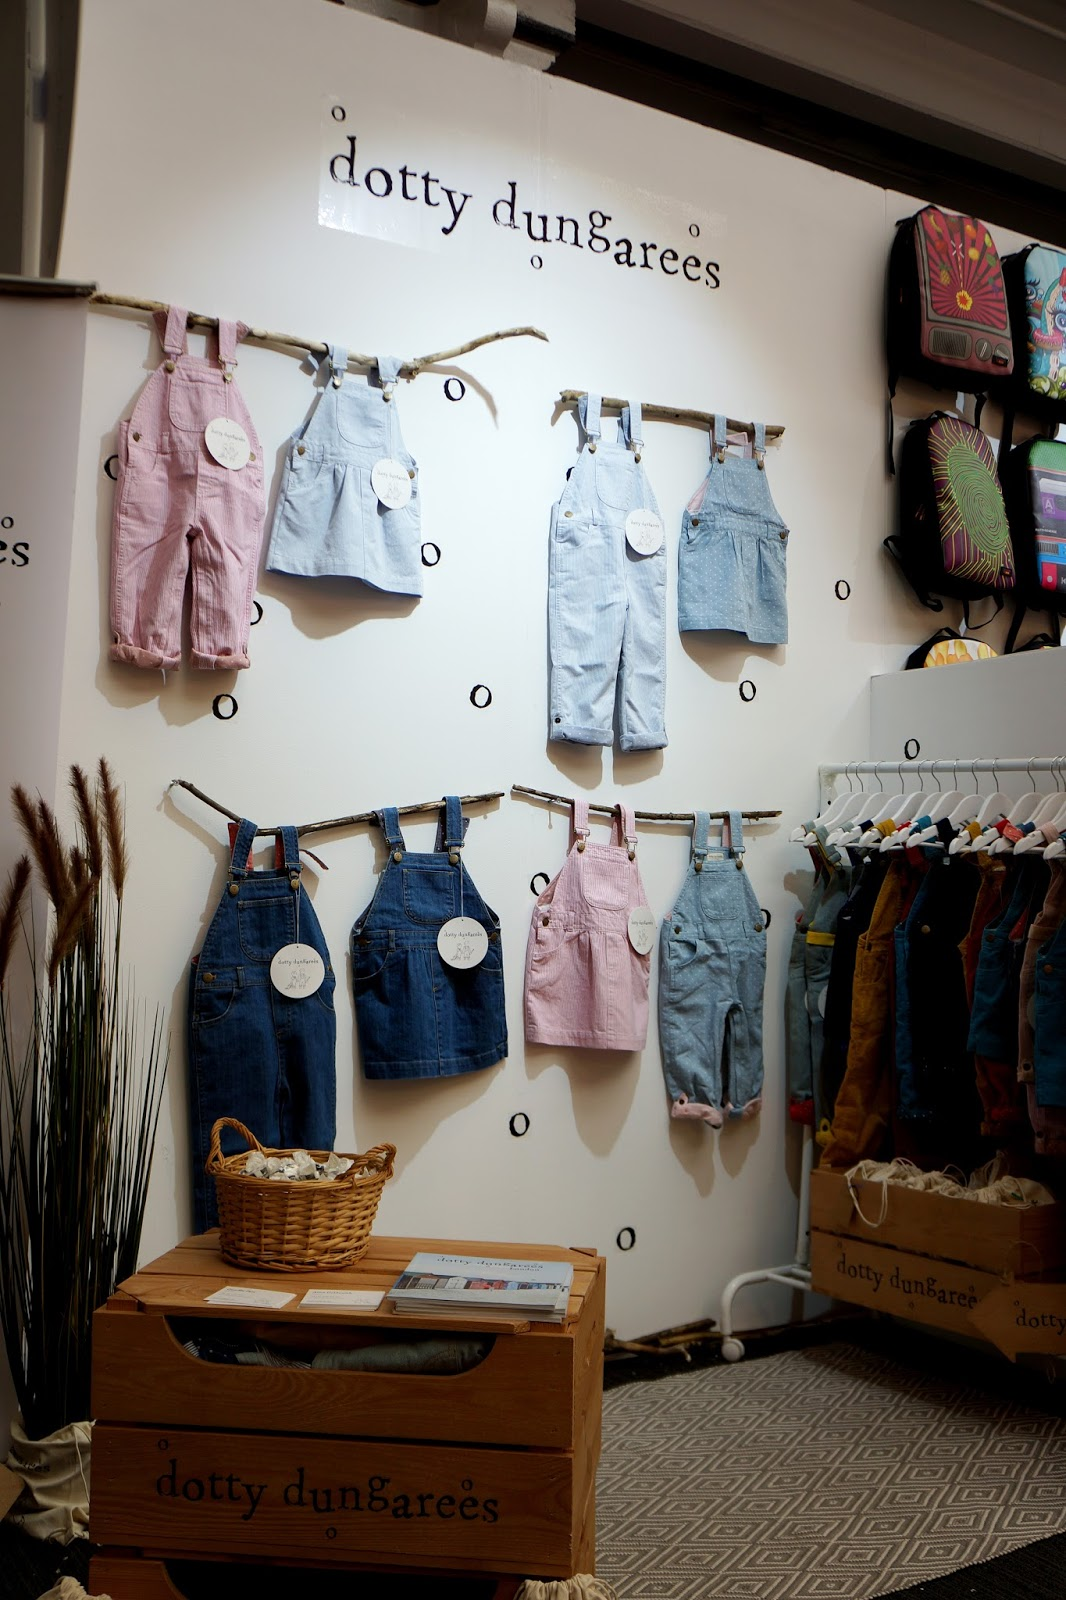 dotty dungarees at bubble london 2015